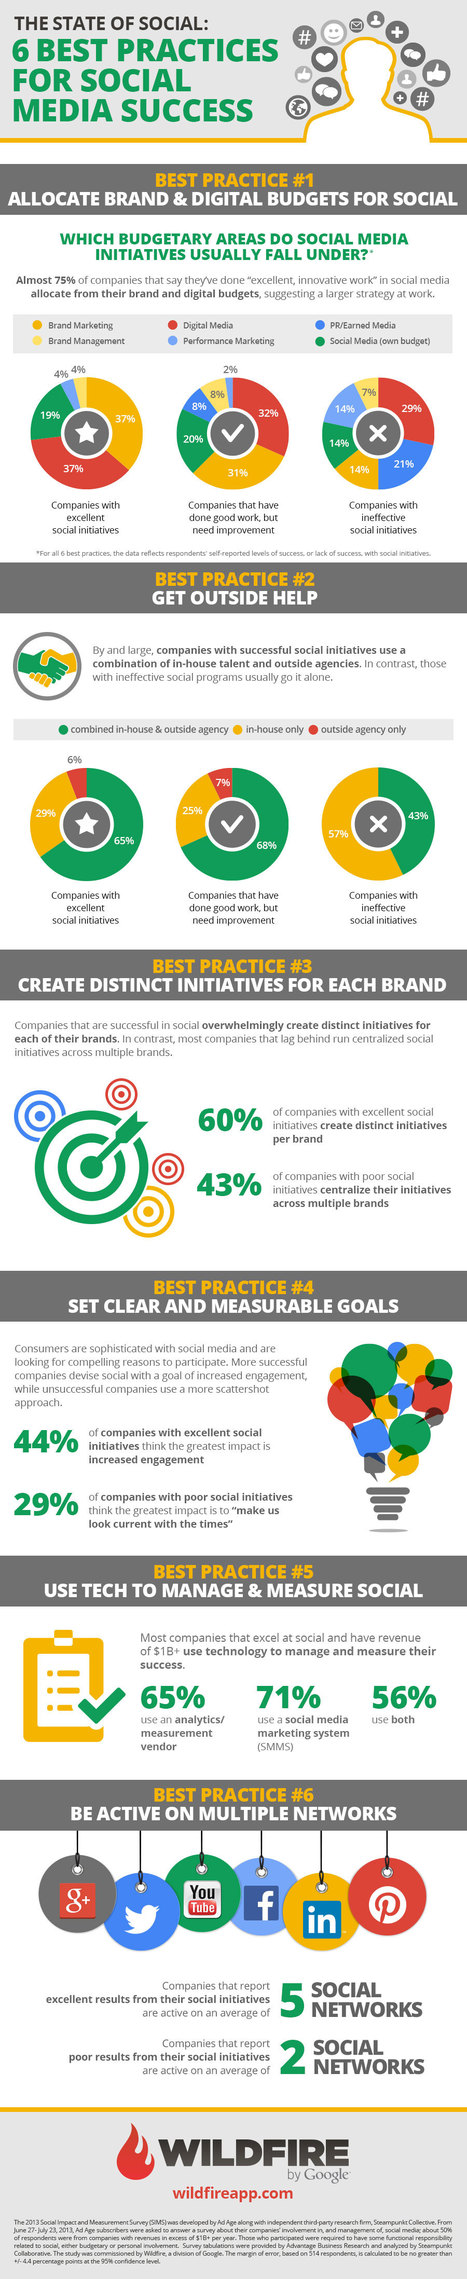 The State of Social: An Infographic of 6 Best Practices | Internet Marketing | Scoop.it